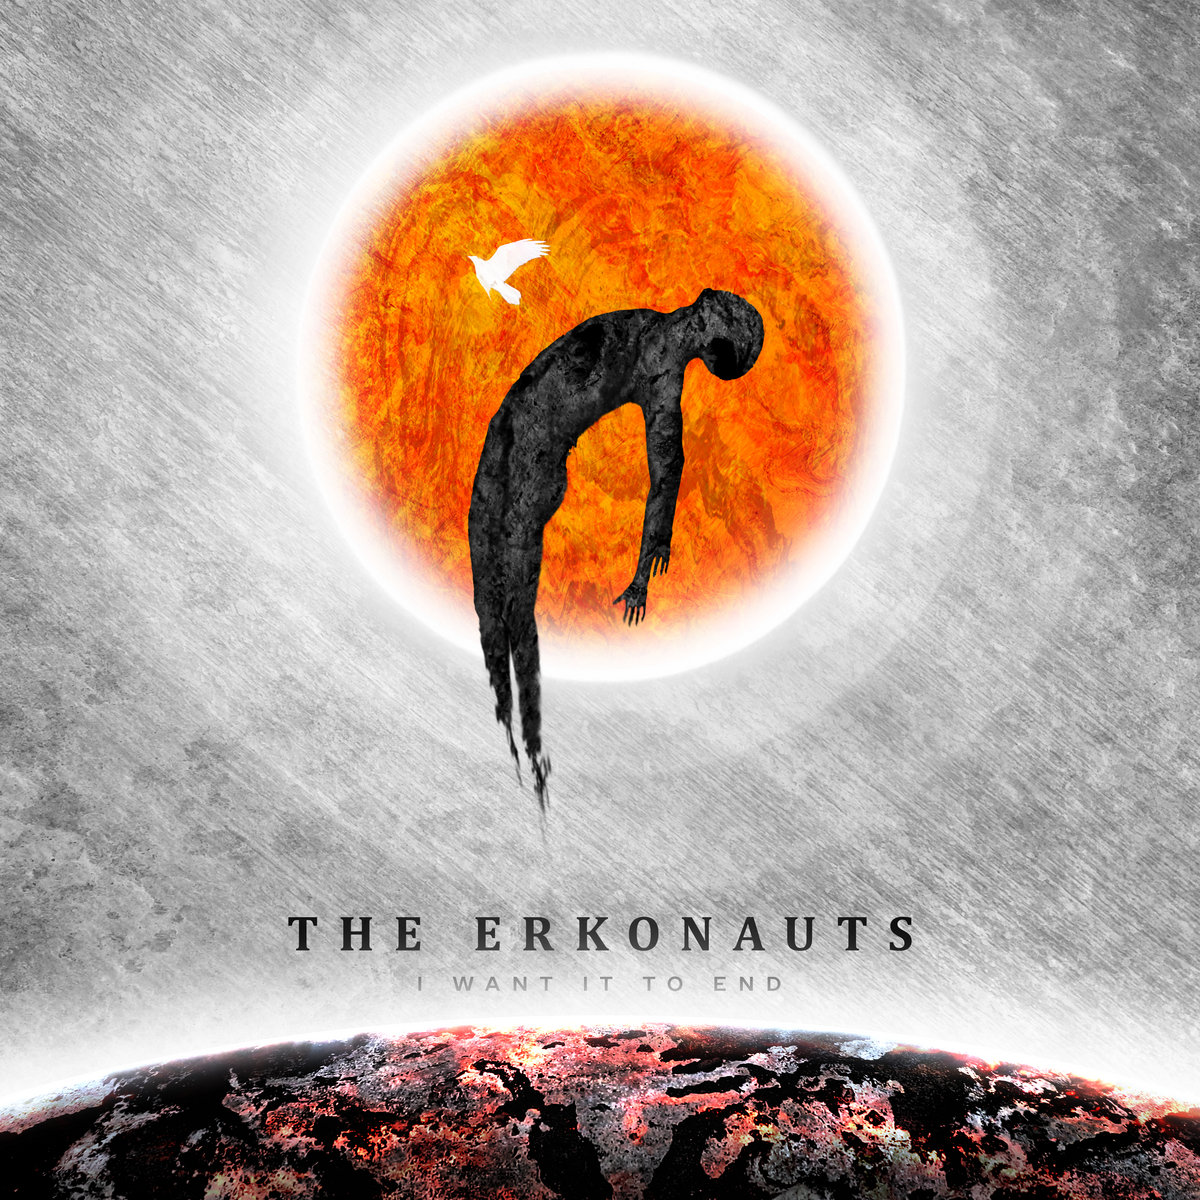 The Erkonauts: I Want It to End